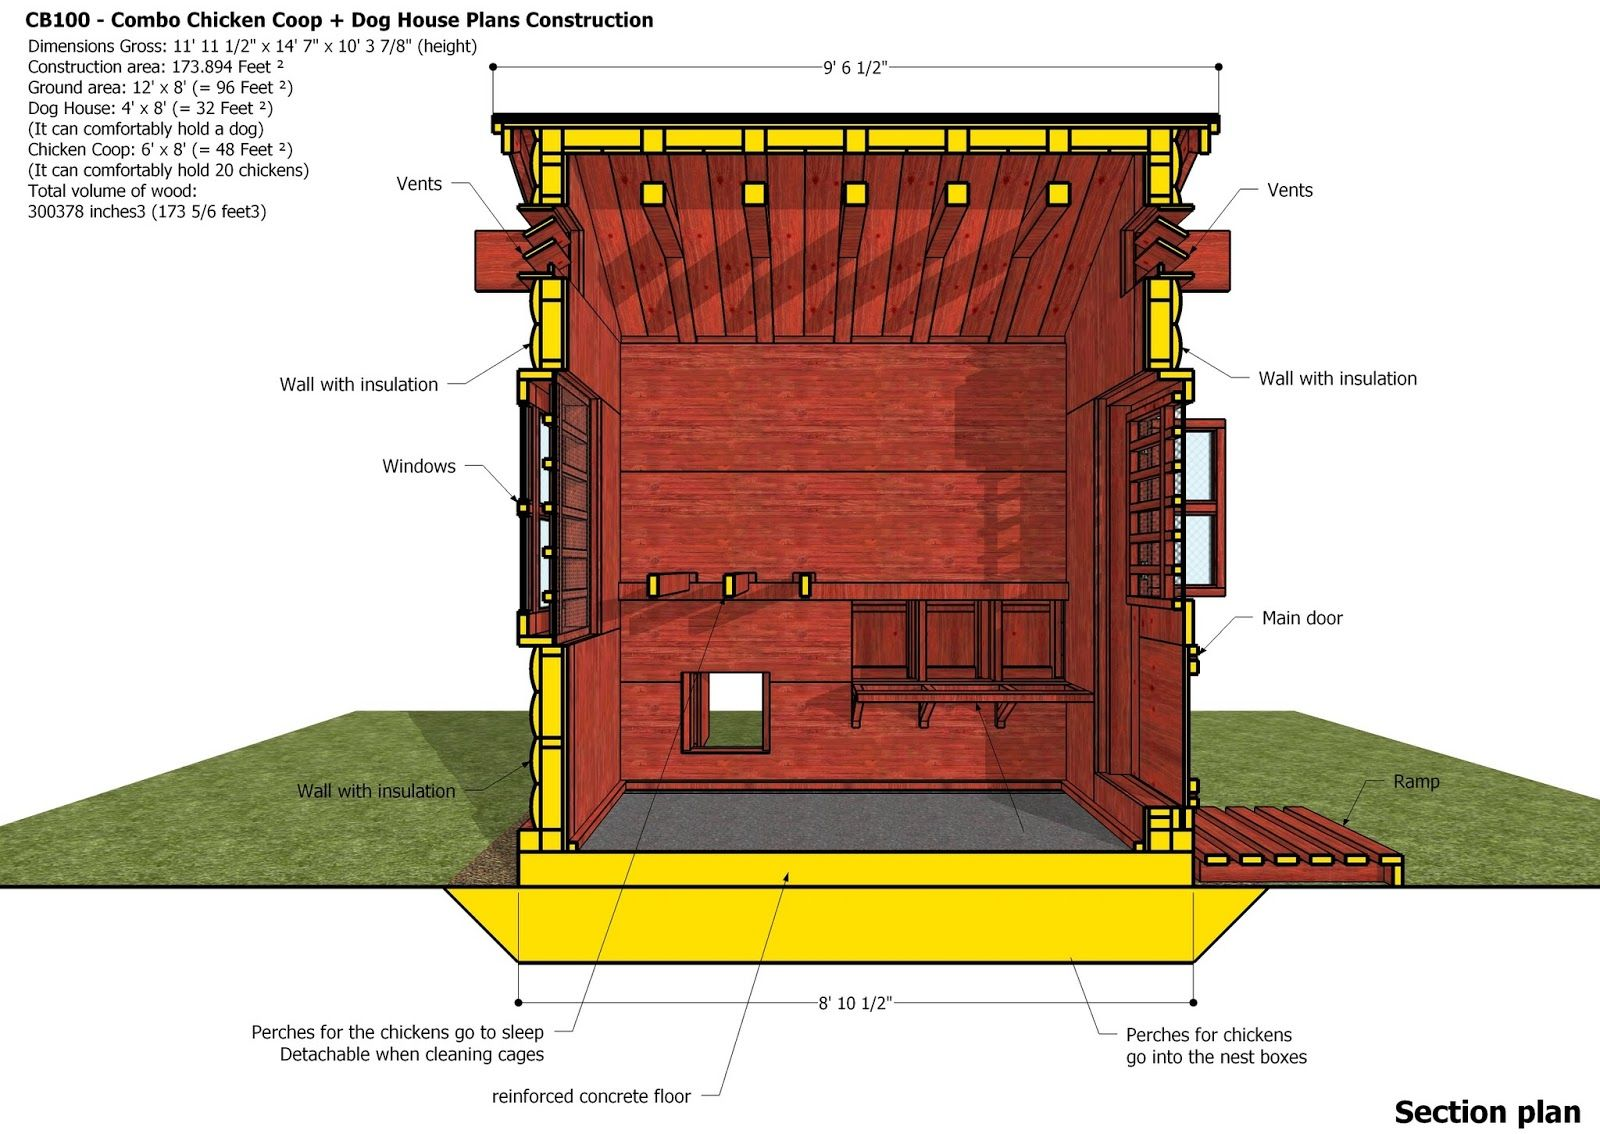 home garden plans: CB100 - Combo Plans - Chicken Coop ...